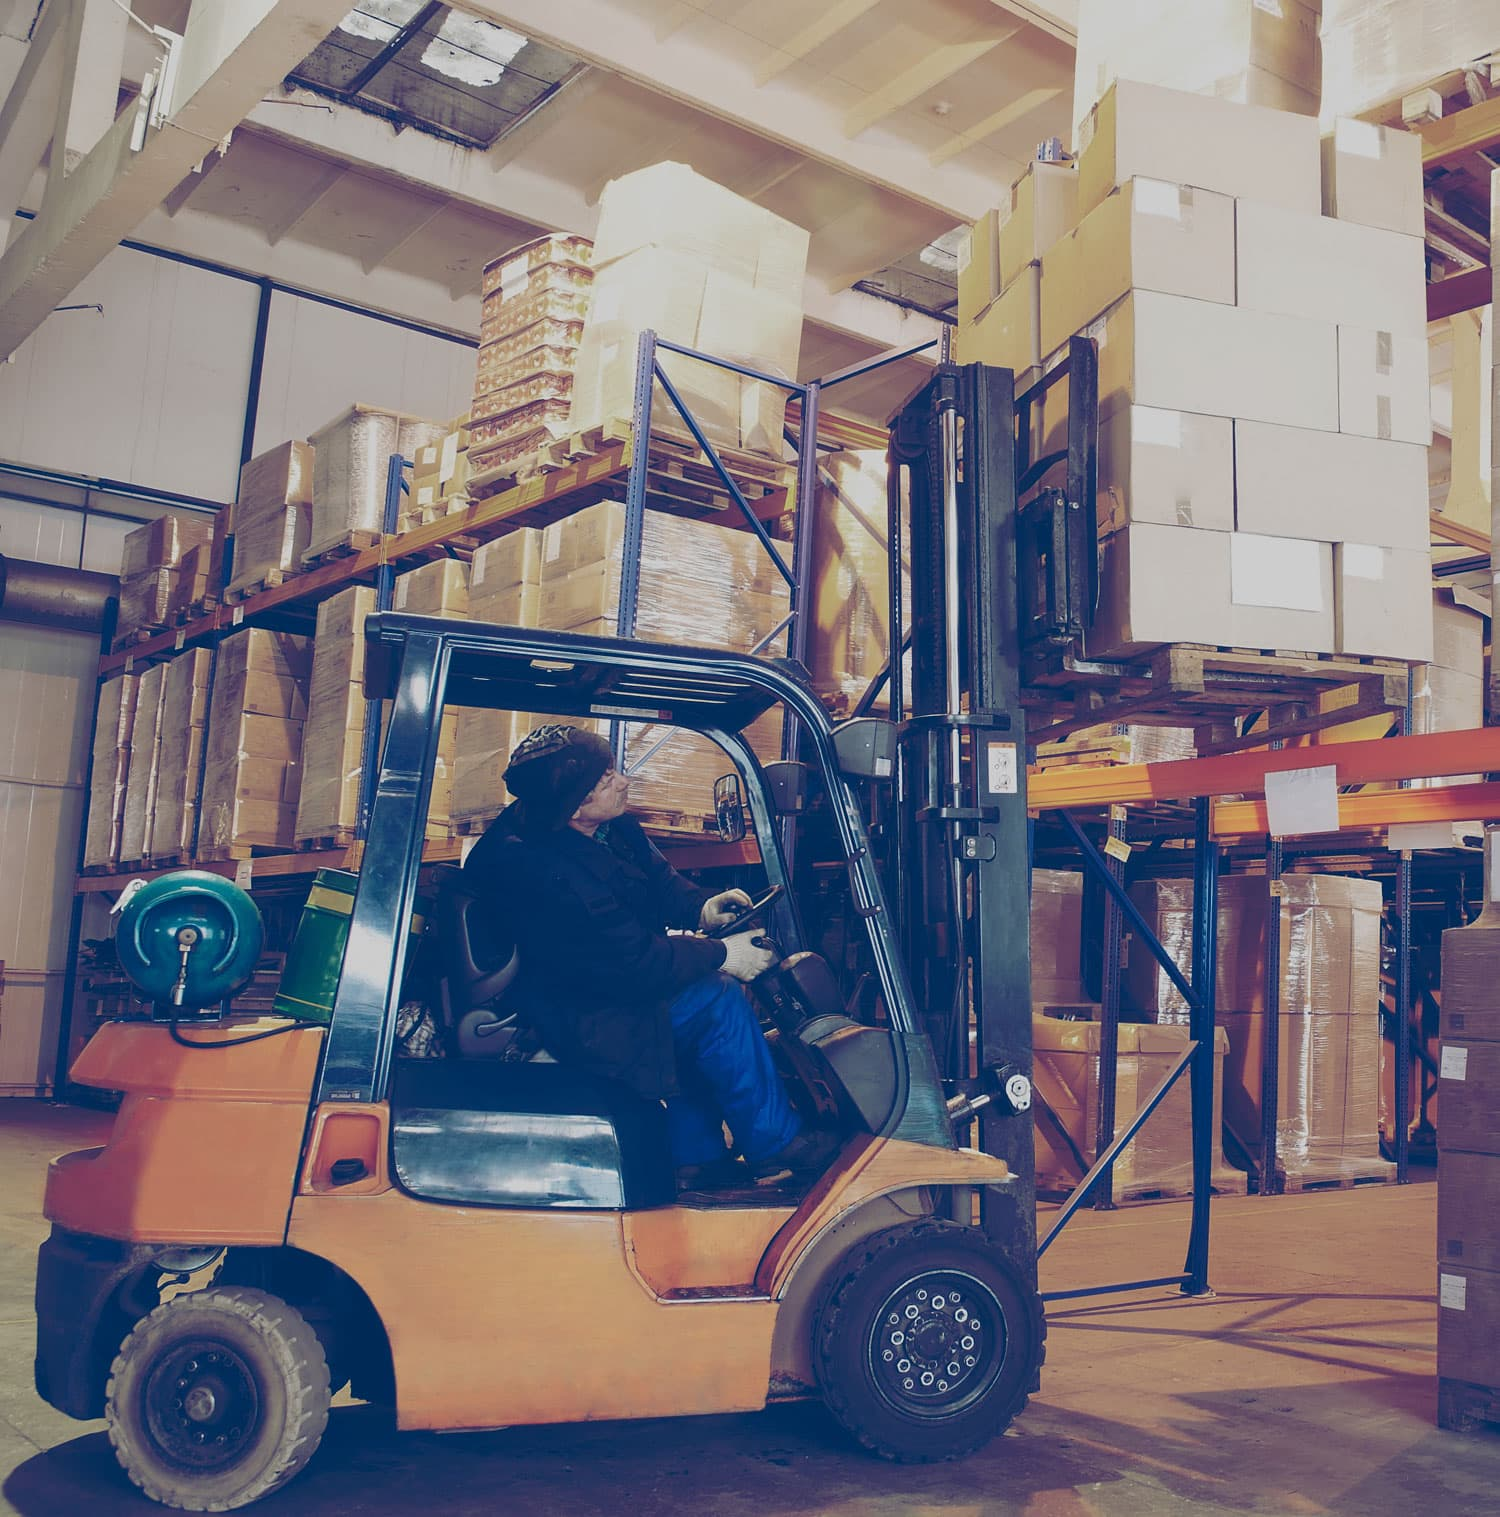 Man placing a skid of boxes on a storage shelf using a forklift.